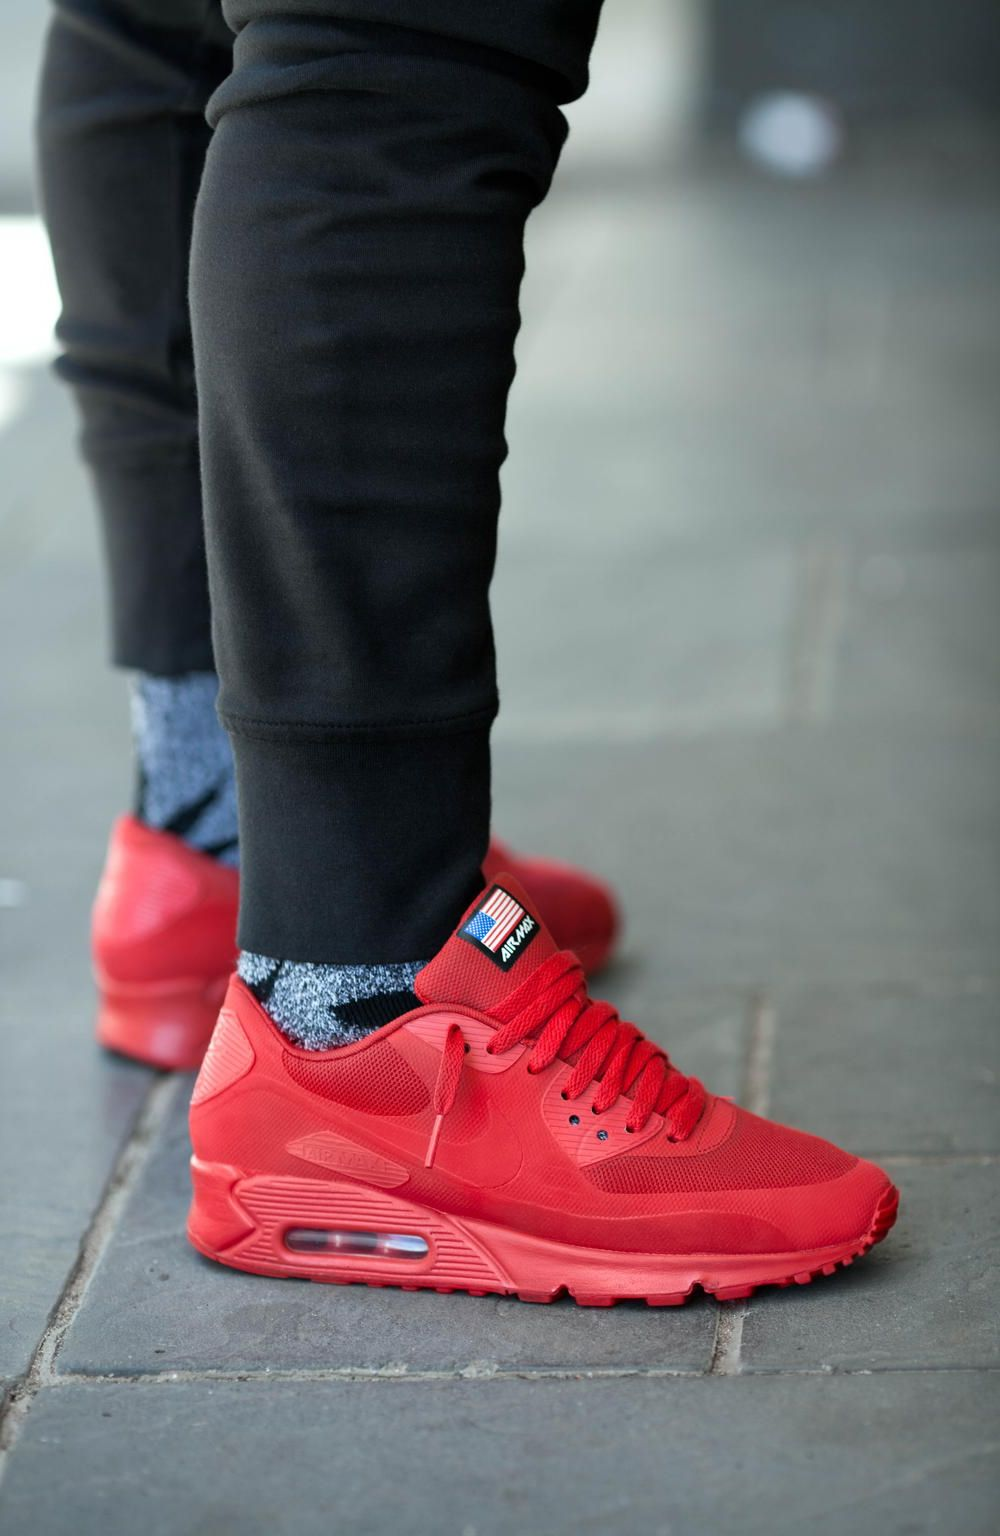 sweetsoles: Nike Air Max 90 Hyperfuse Independence Day Red